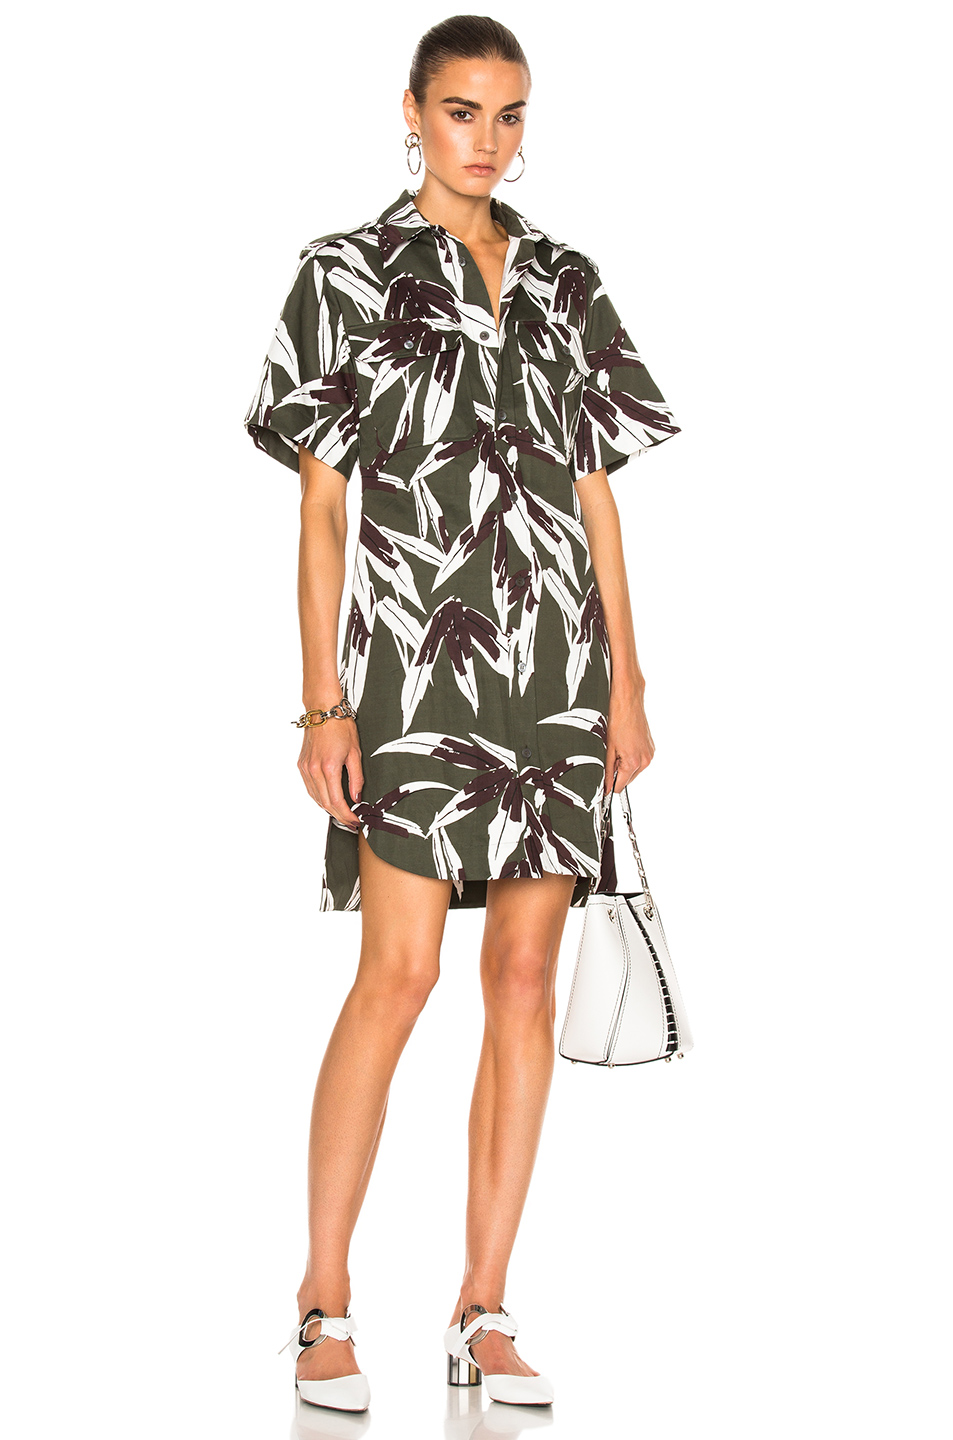 Marni Printed Button Up Dress in Floral,Green